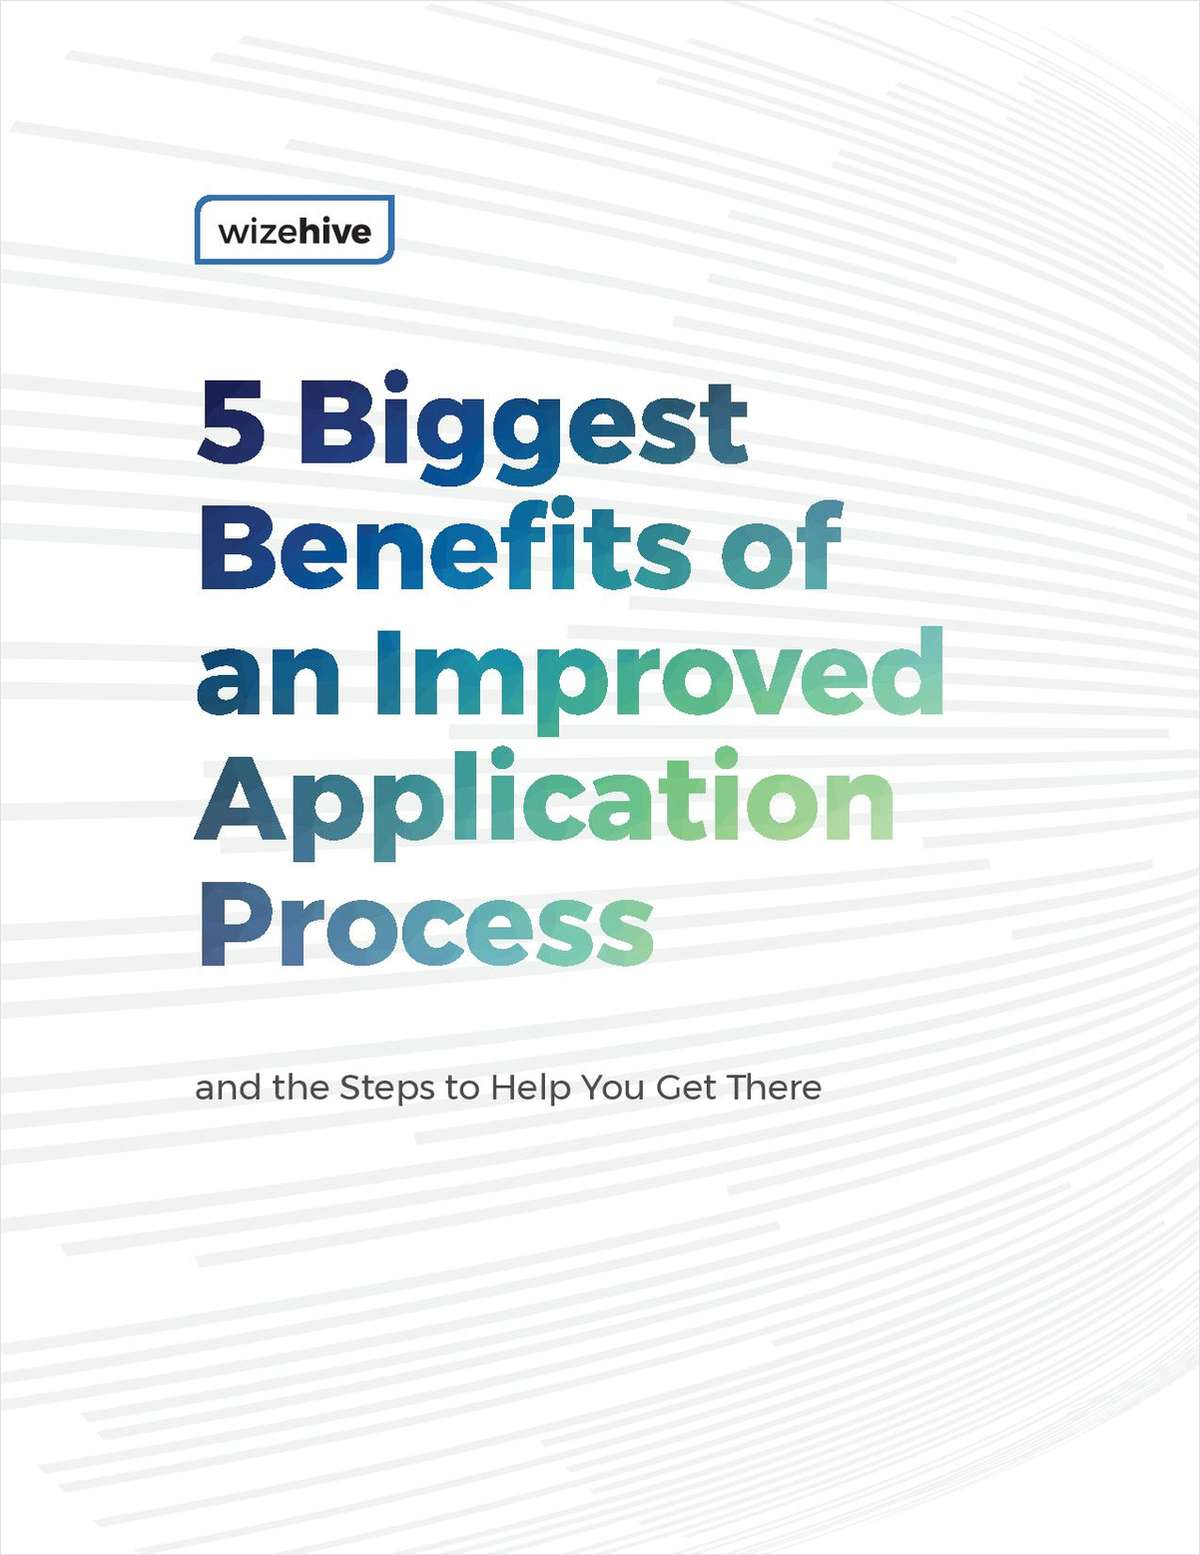 5 Biggest Benefits of an Improved Application Process